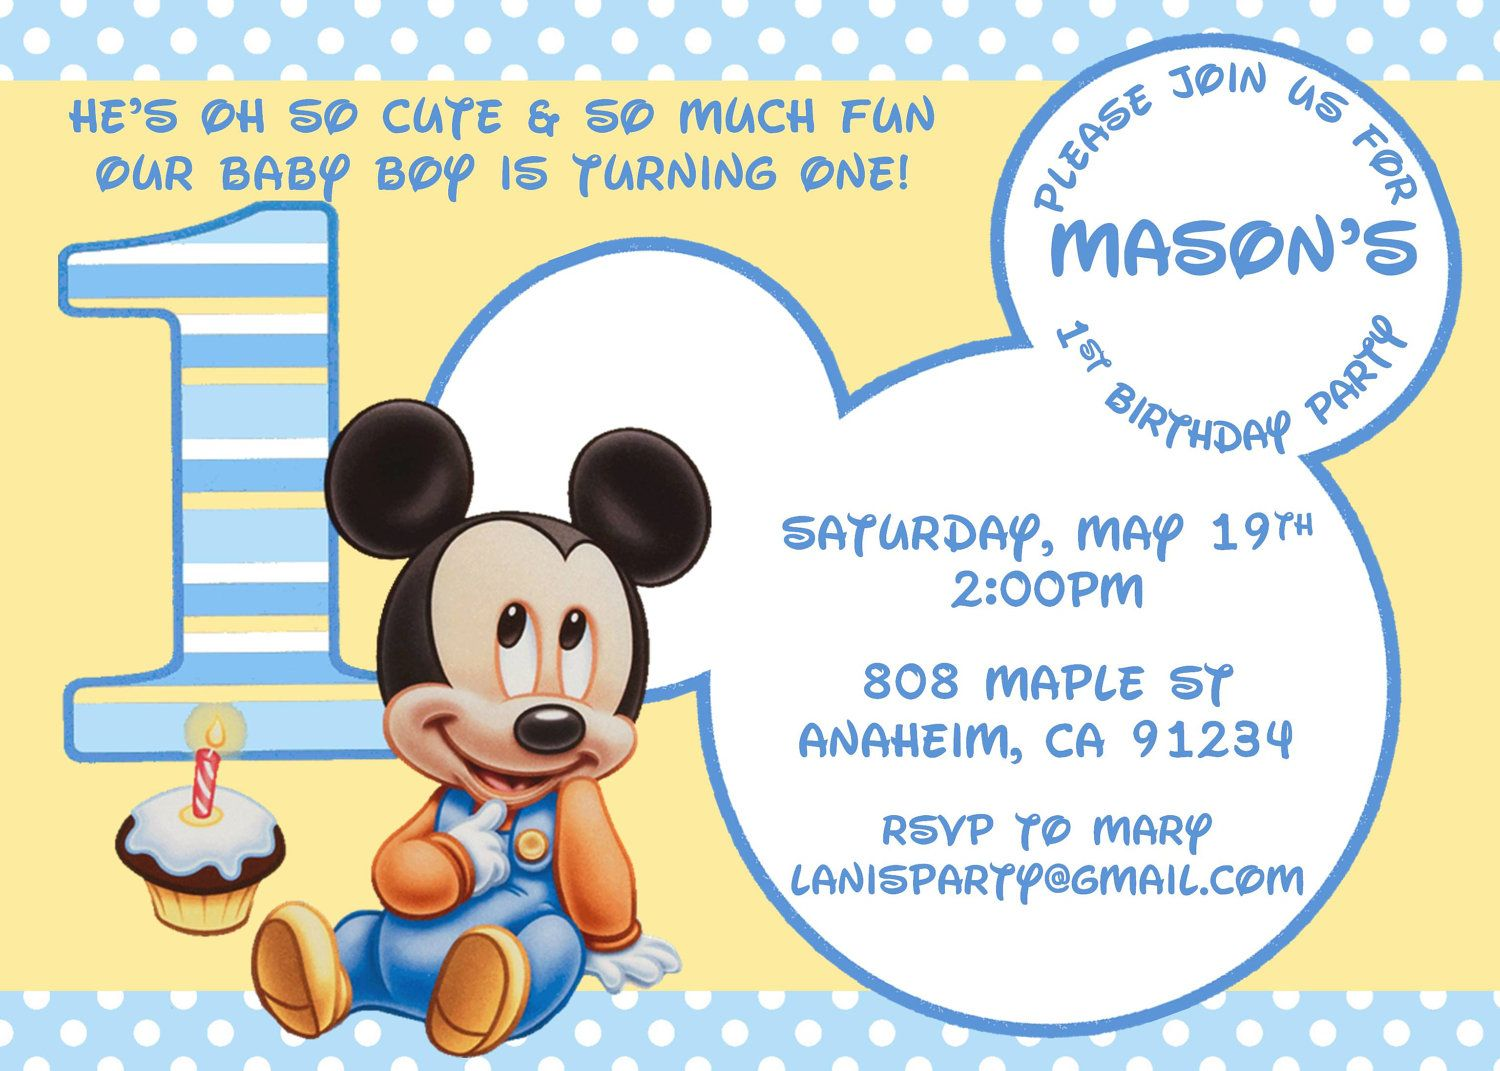 Baby Mickey Mouse Matches Mickeys St Party Supplies - Digital birthday invitation template